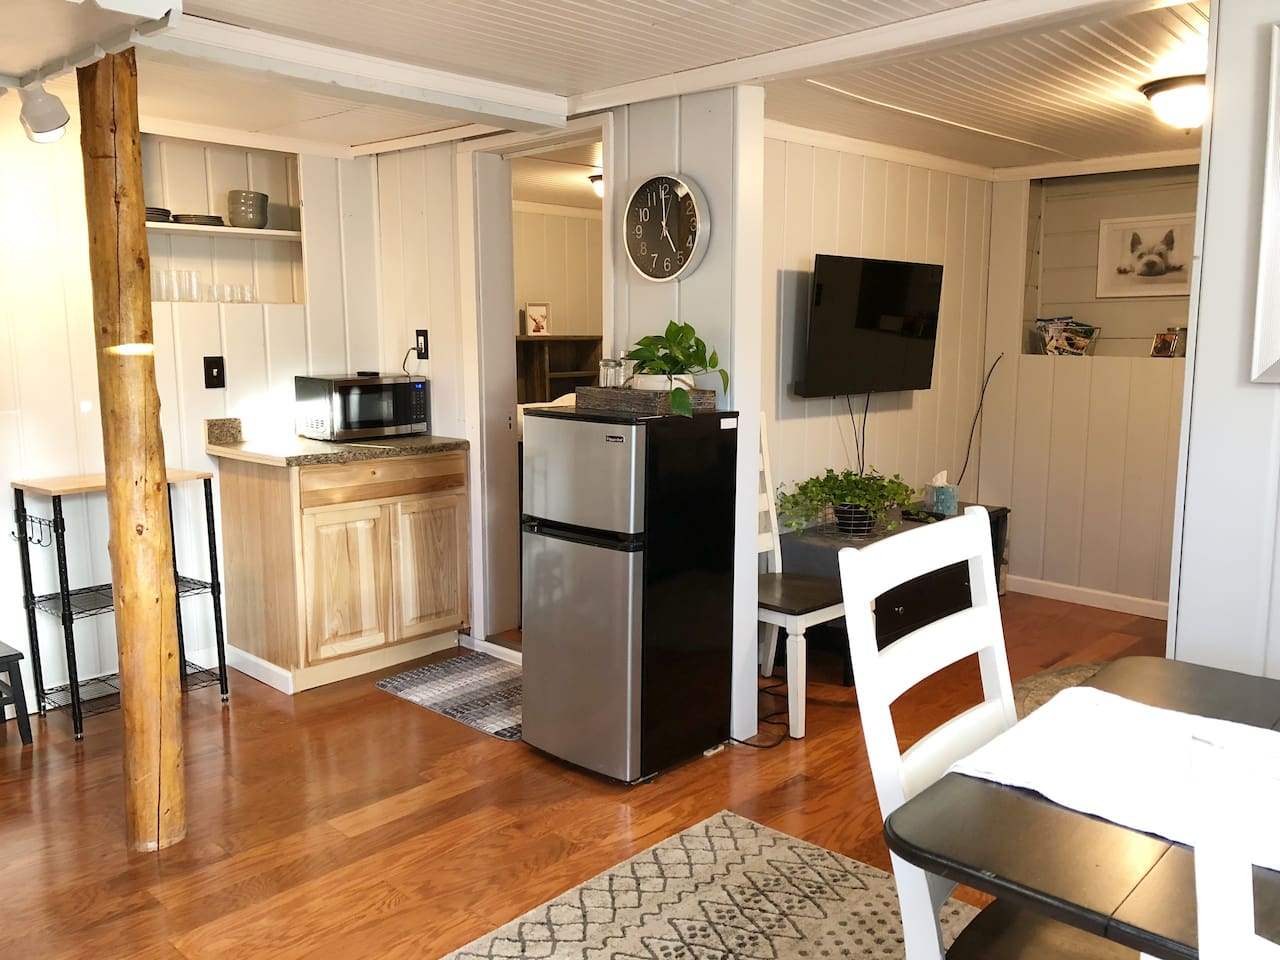 Small kitchenette, dining area with view of bedroom entrance and living room area